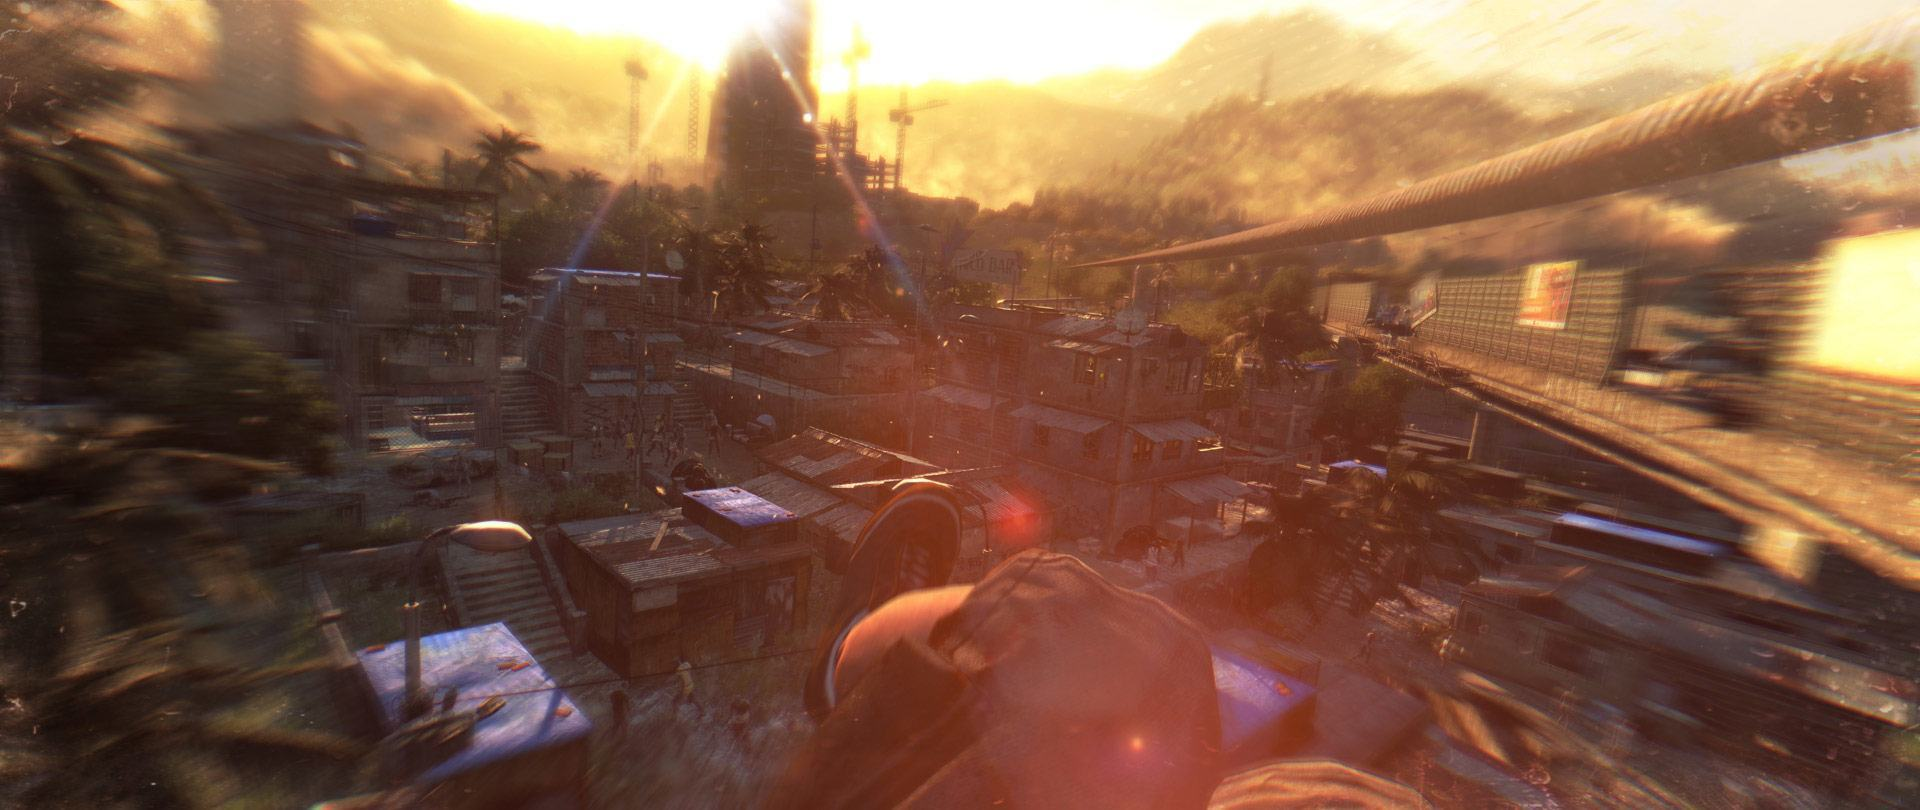 Dying Light - VGProfessional Review (1)